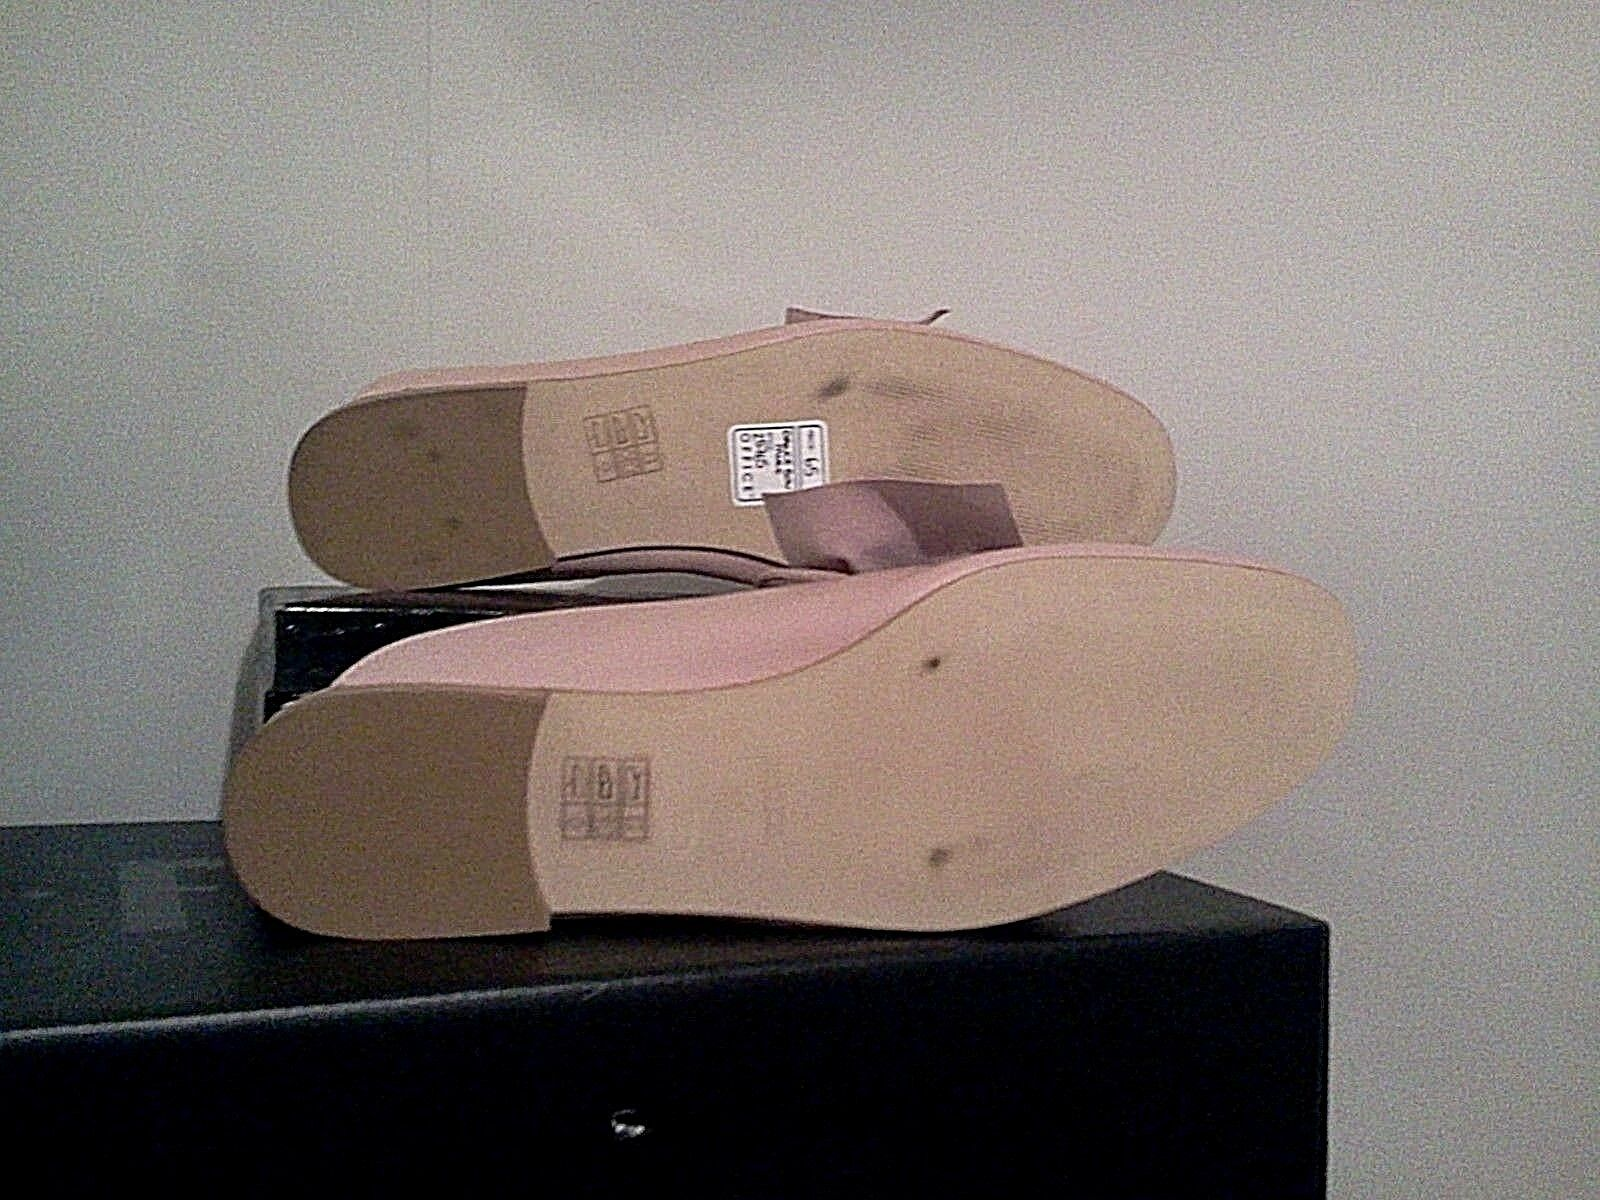 OFFICE london schuhe schuhe schuhe woman sabot pink staple mule 100% total genuine Leder uk 6 f832ca